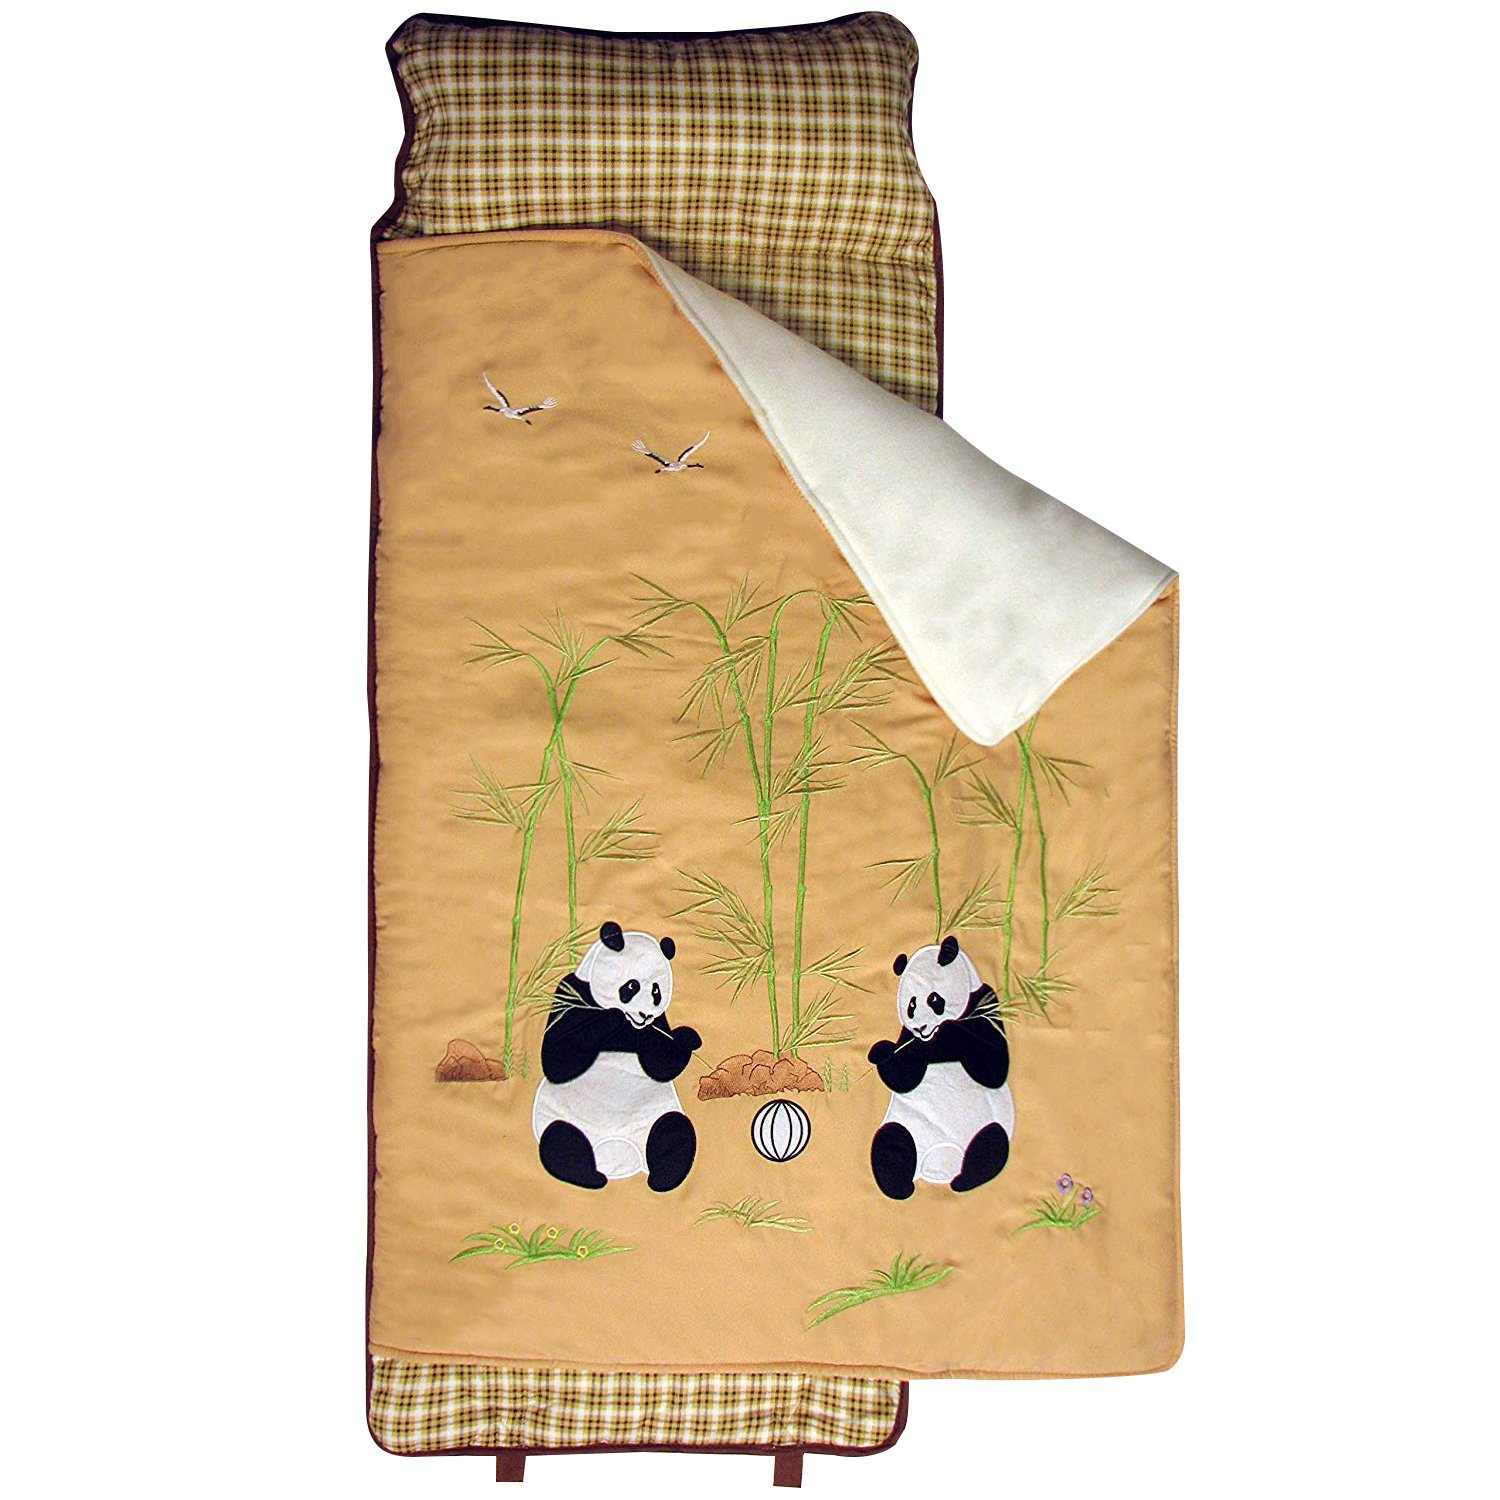 Other Baby Gear Baby Gear Infant Baby Pillows For Car Seat Bath Lot Of 2 panda Froot Loops